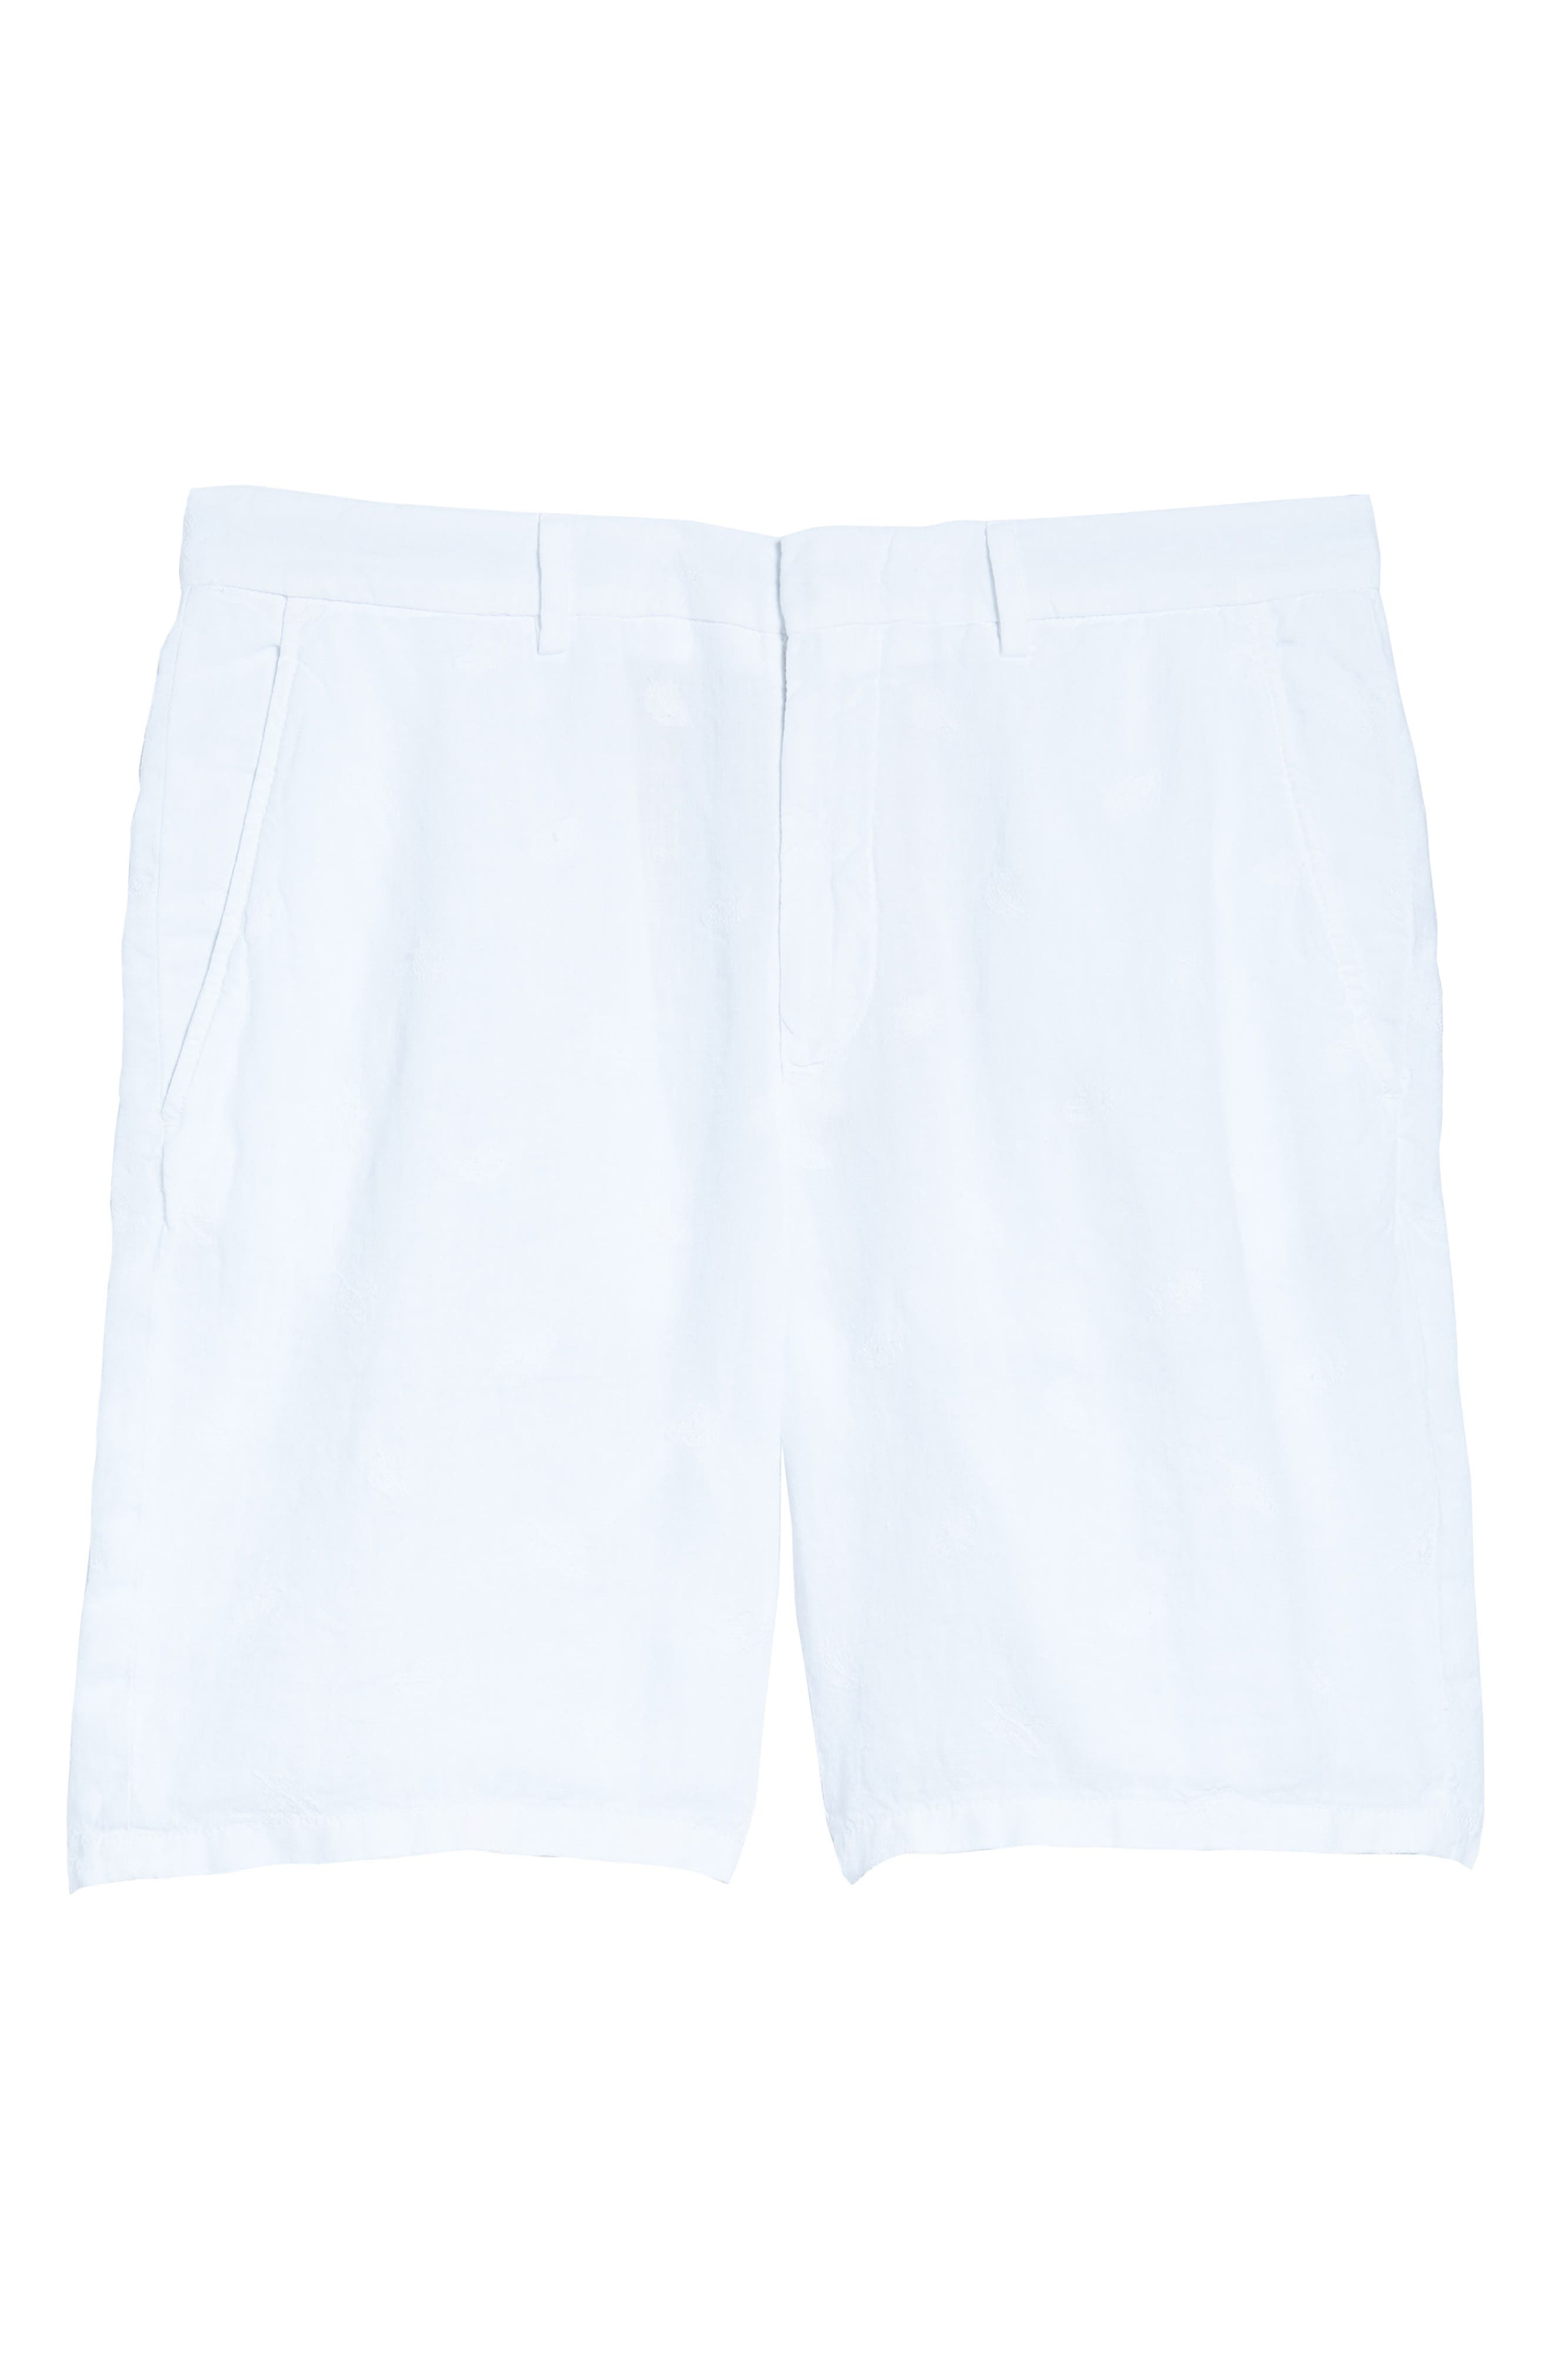 Embroidered Linen Blend Shorts,                             Alternate thumbnail 6, color,                             BLANC